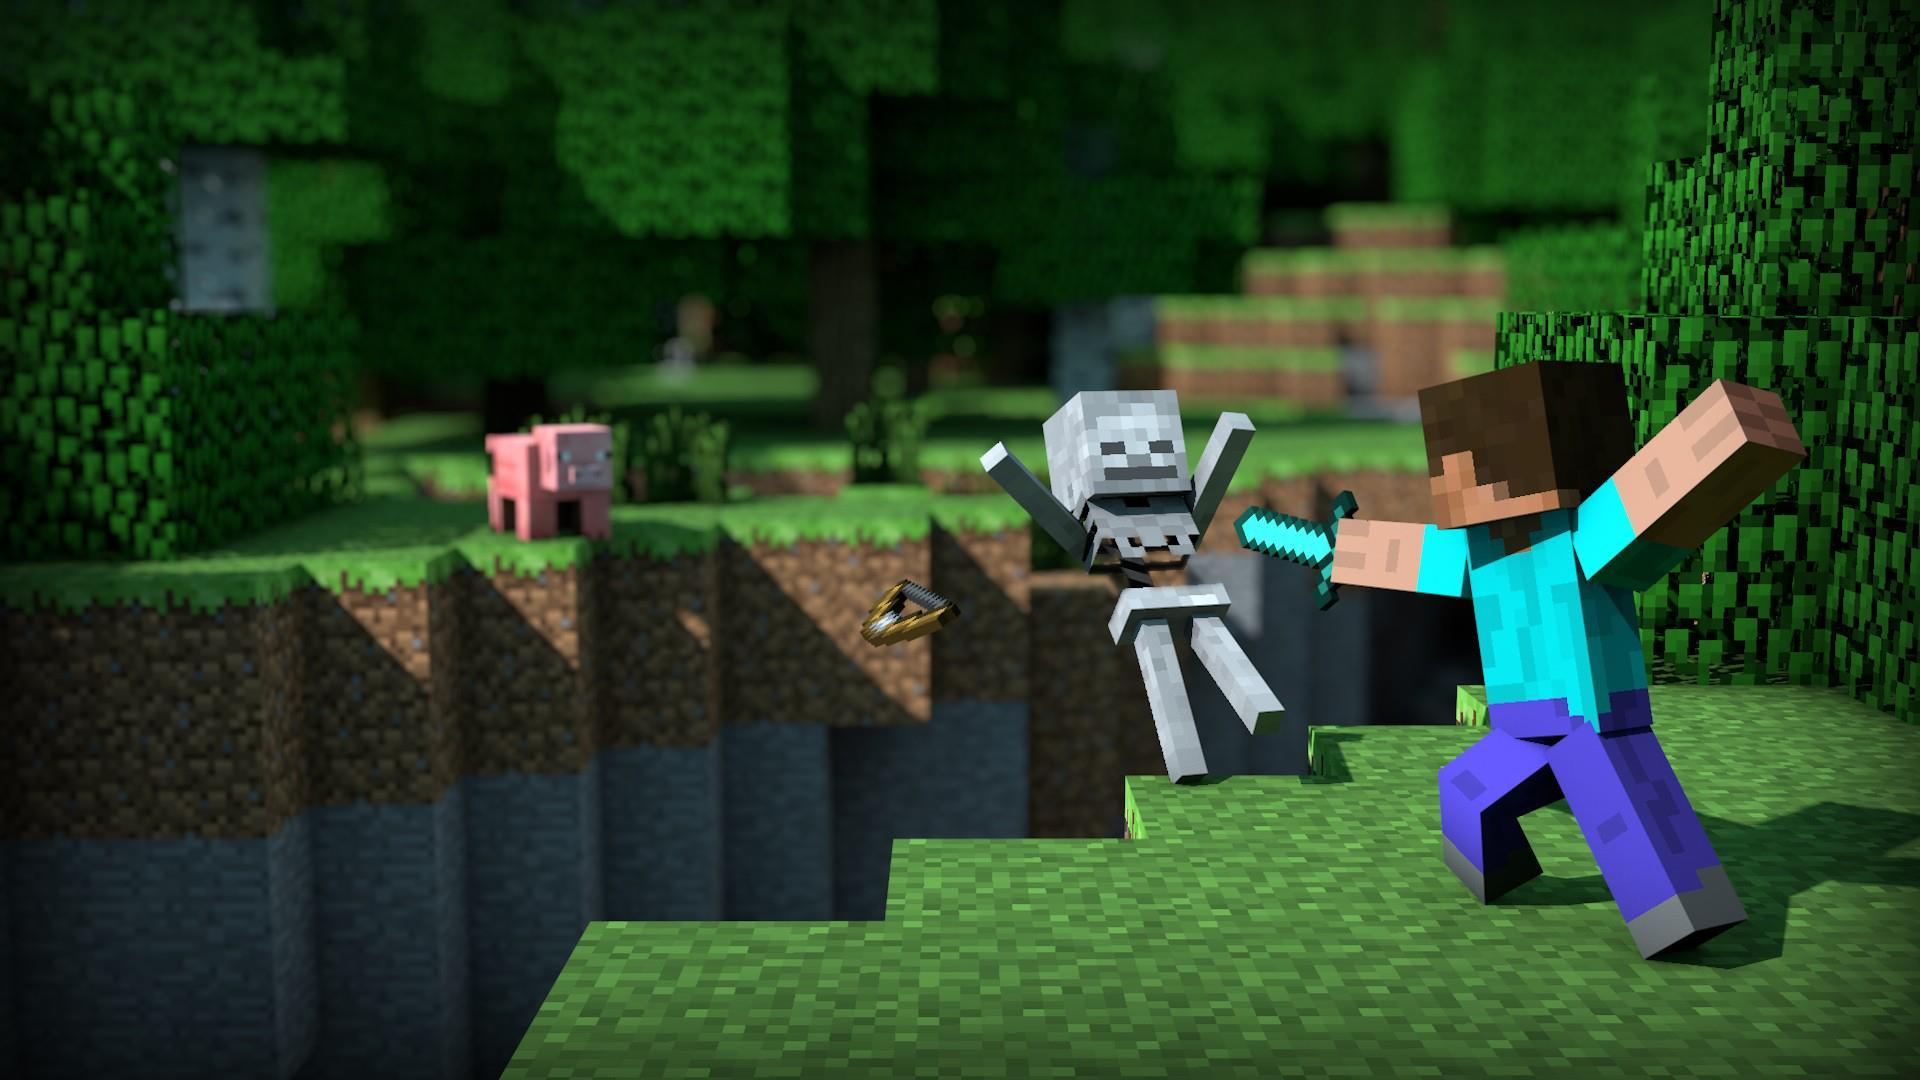 Minecraft HD Wallpapers - Page 2